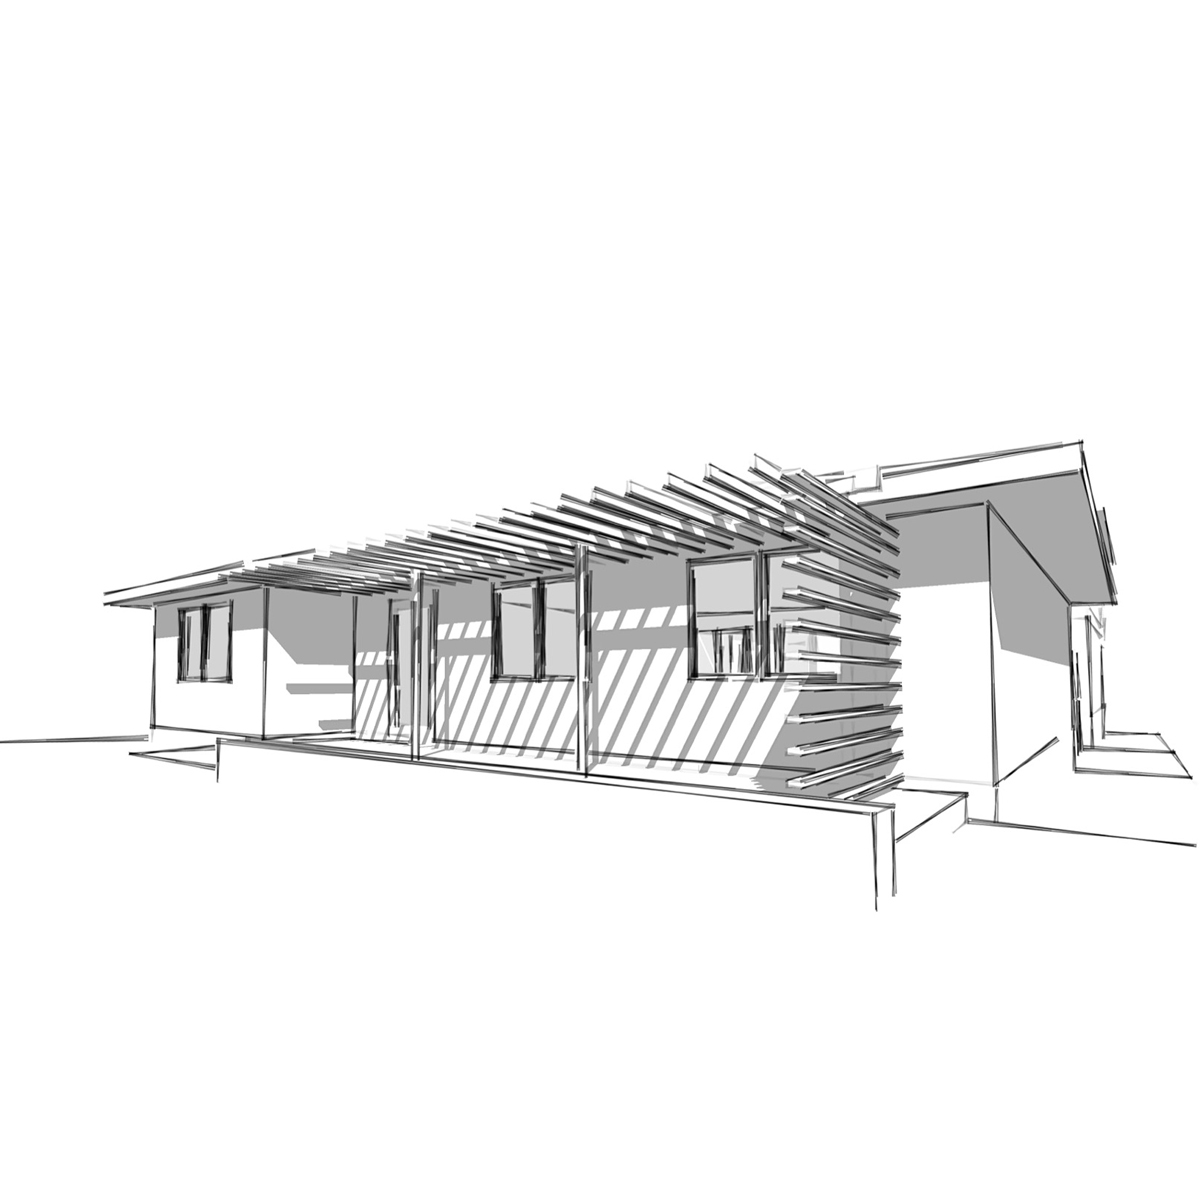 residential architecture in north laguna: new renderings